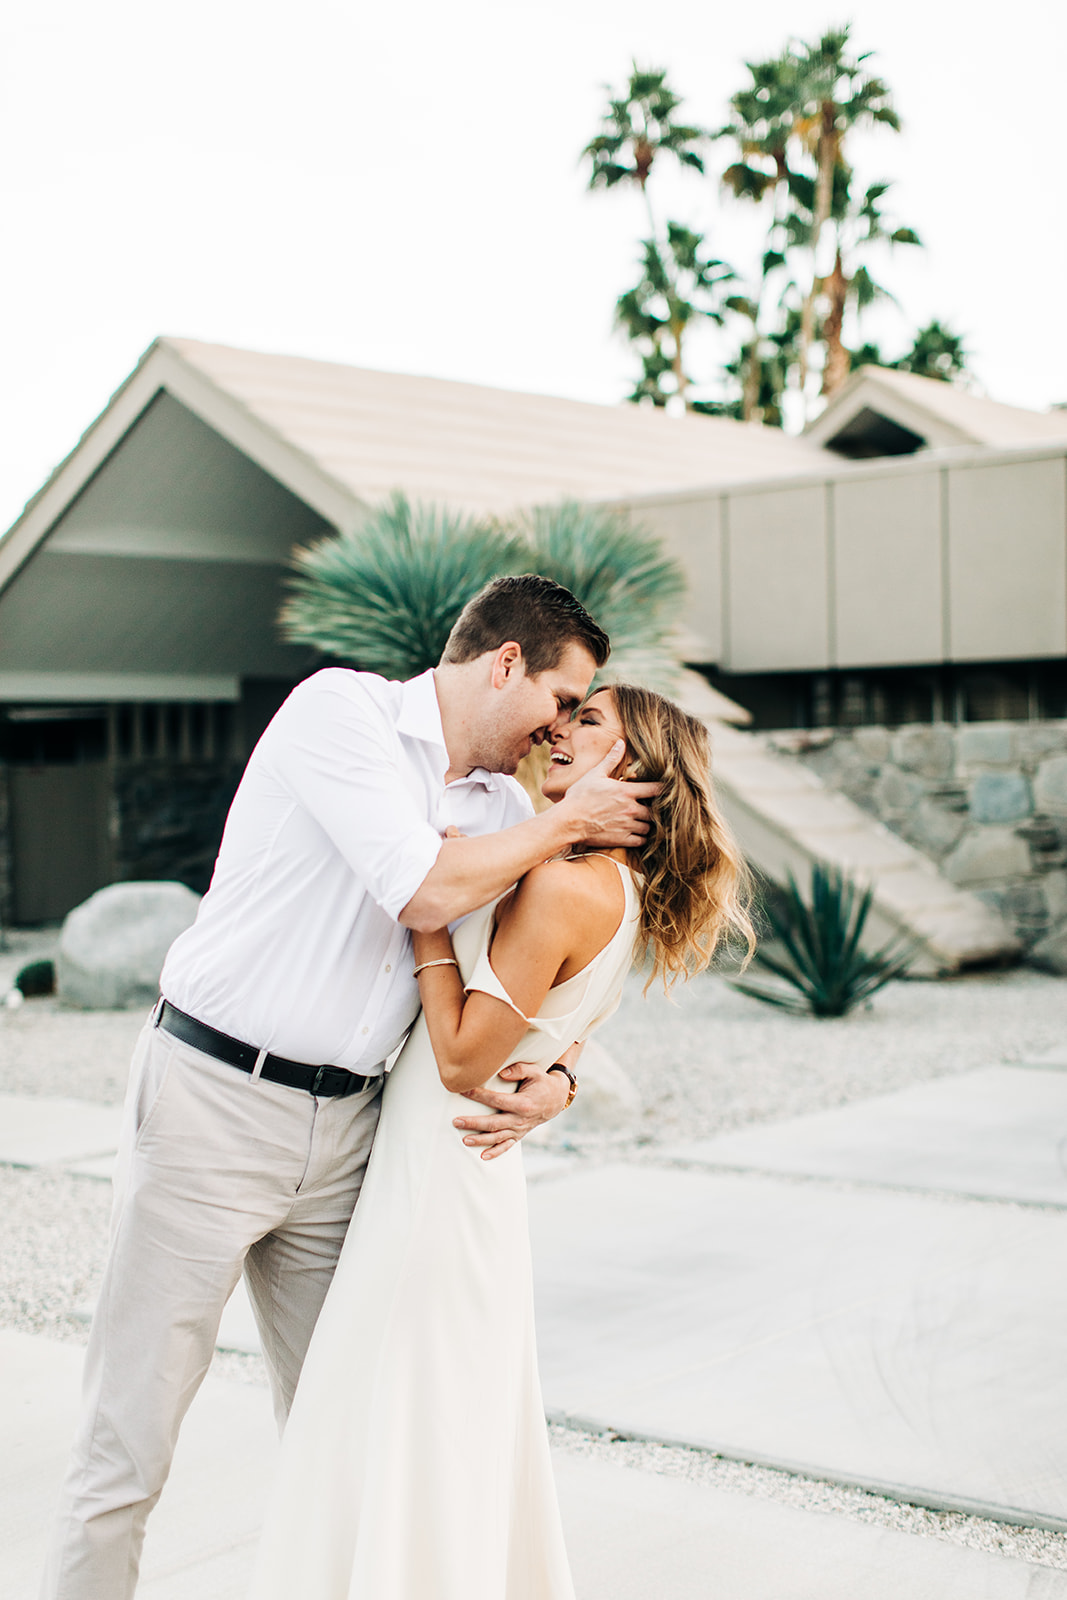 Paulina-Drew_Palm-Springs-Engagement-Photos_Clarisse-Rae_Southern-California-Wedding-Photographer-42